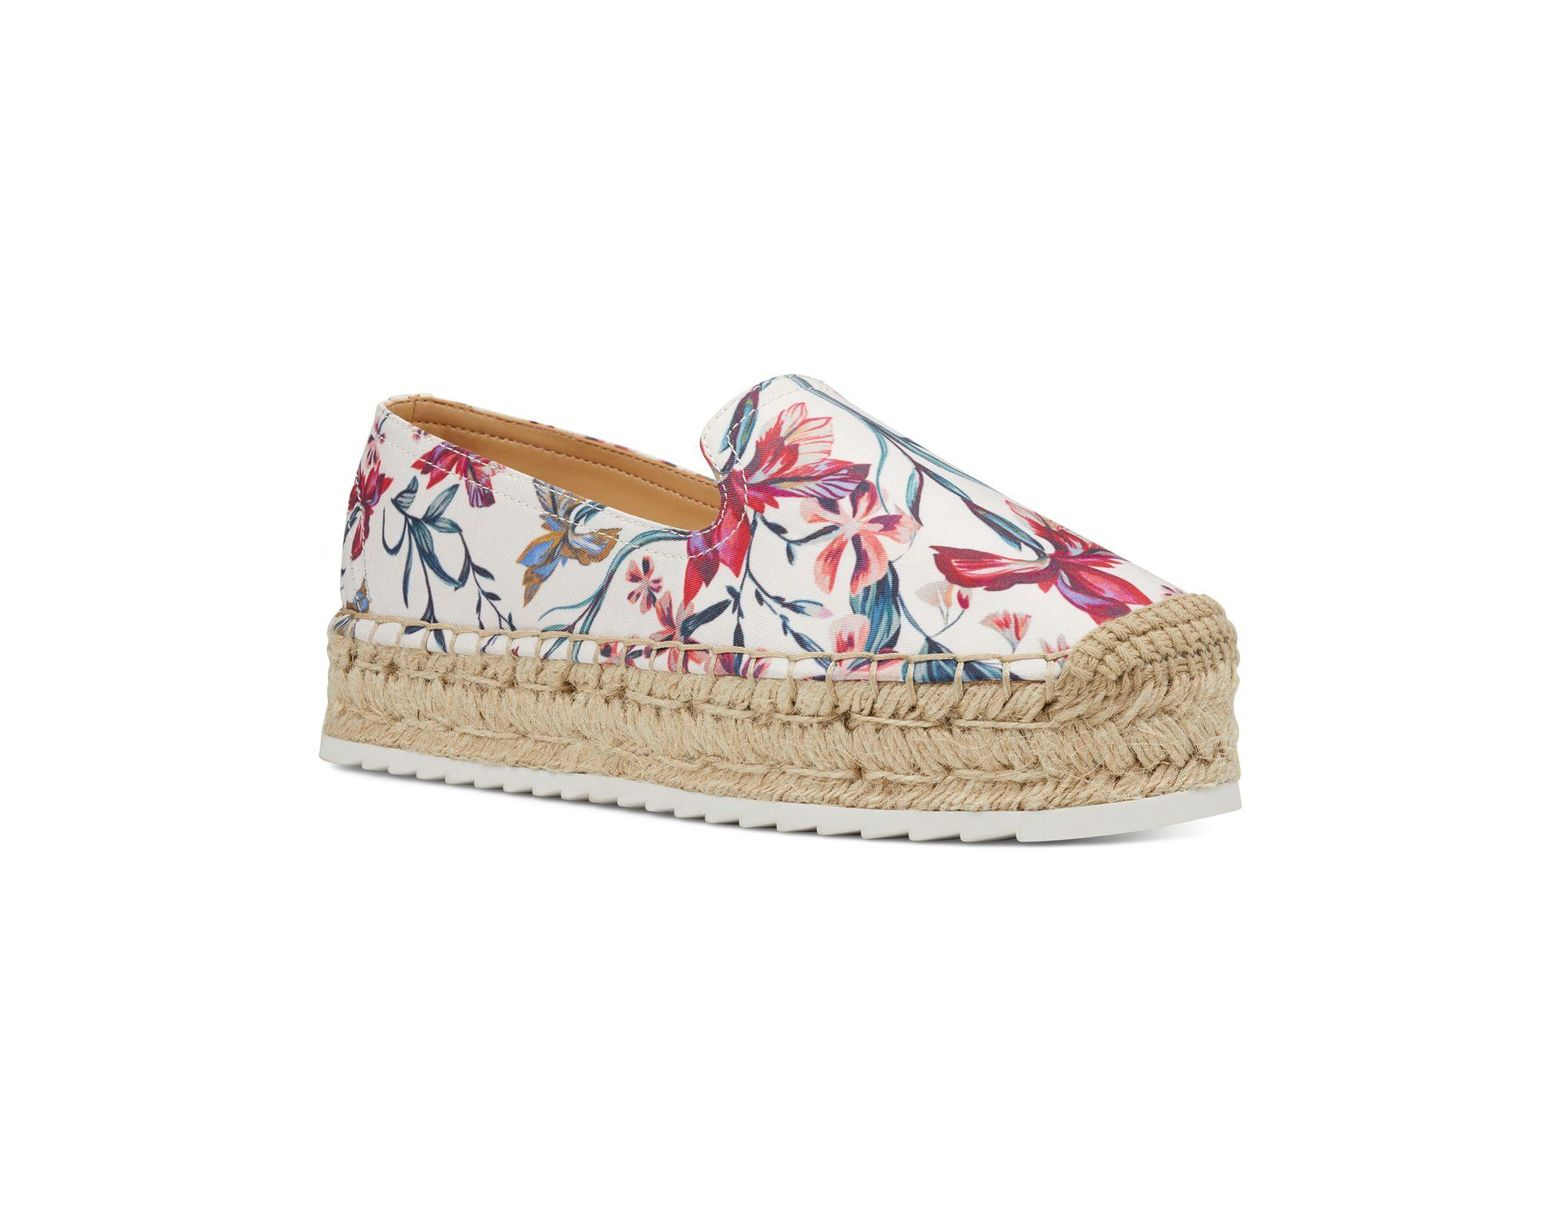 278ee8bfc Nine West Lucy Slip-on Espadrilles in White - Save 1% - Lyst